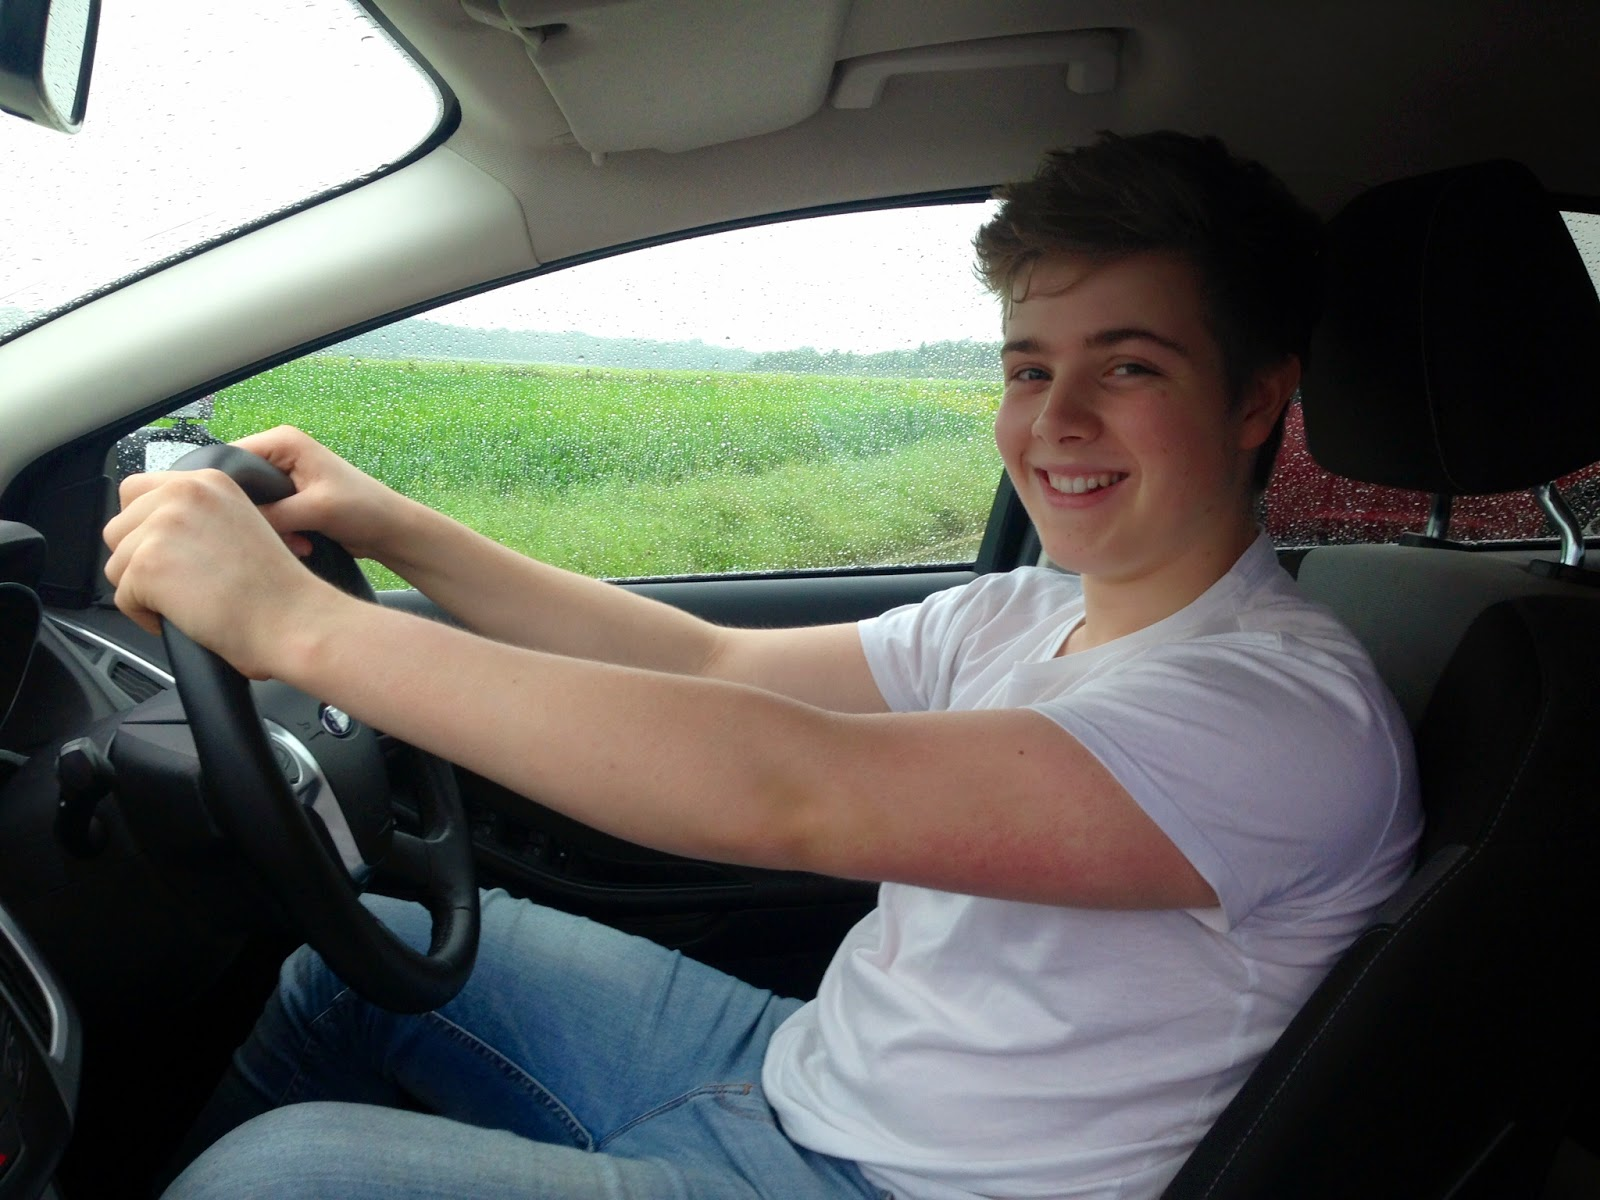 Under 17 driving lessons Brackley and Banbury